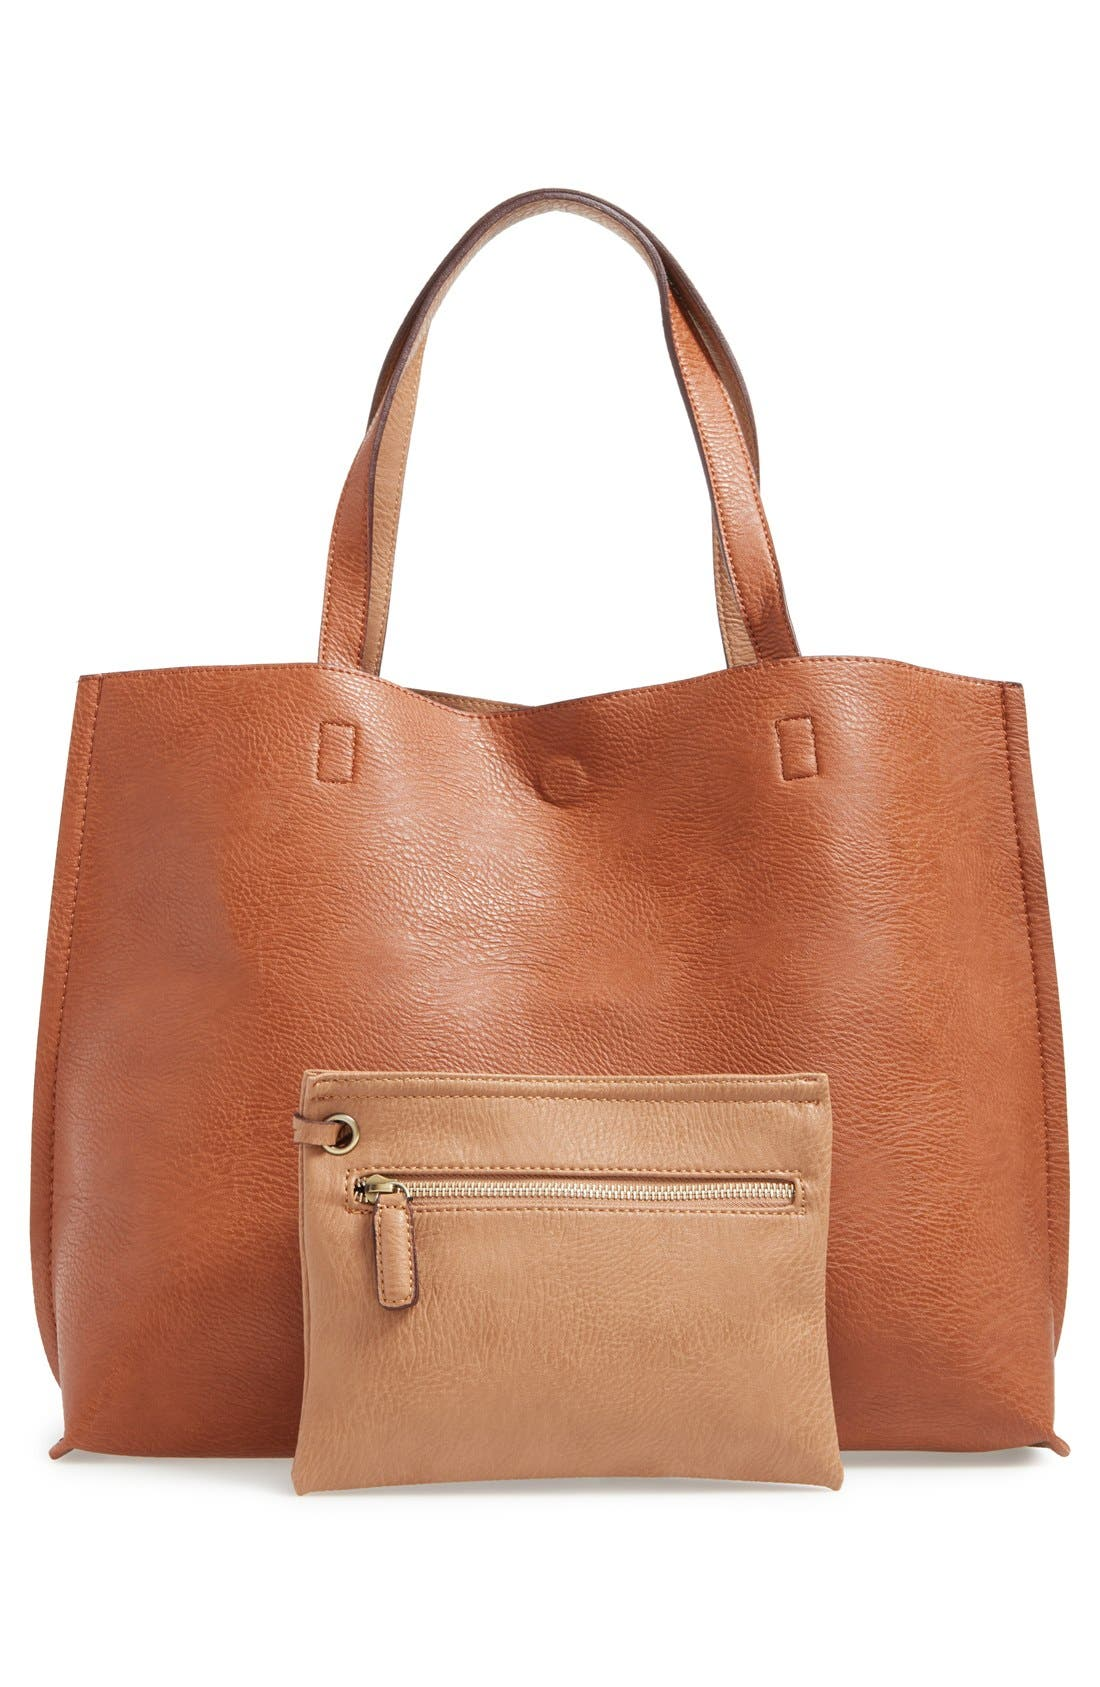 STREET LEVEL Reversible Faux Leather Tote & Wristlet, Main, color, COGNAC